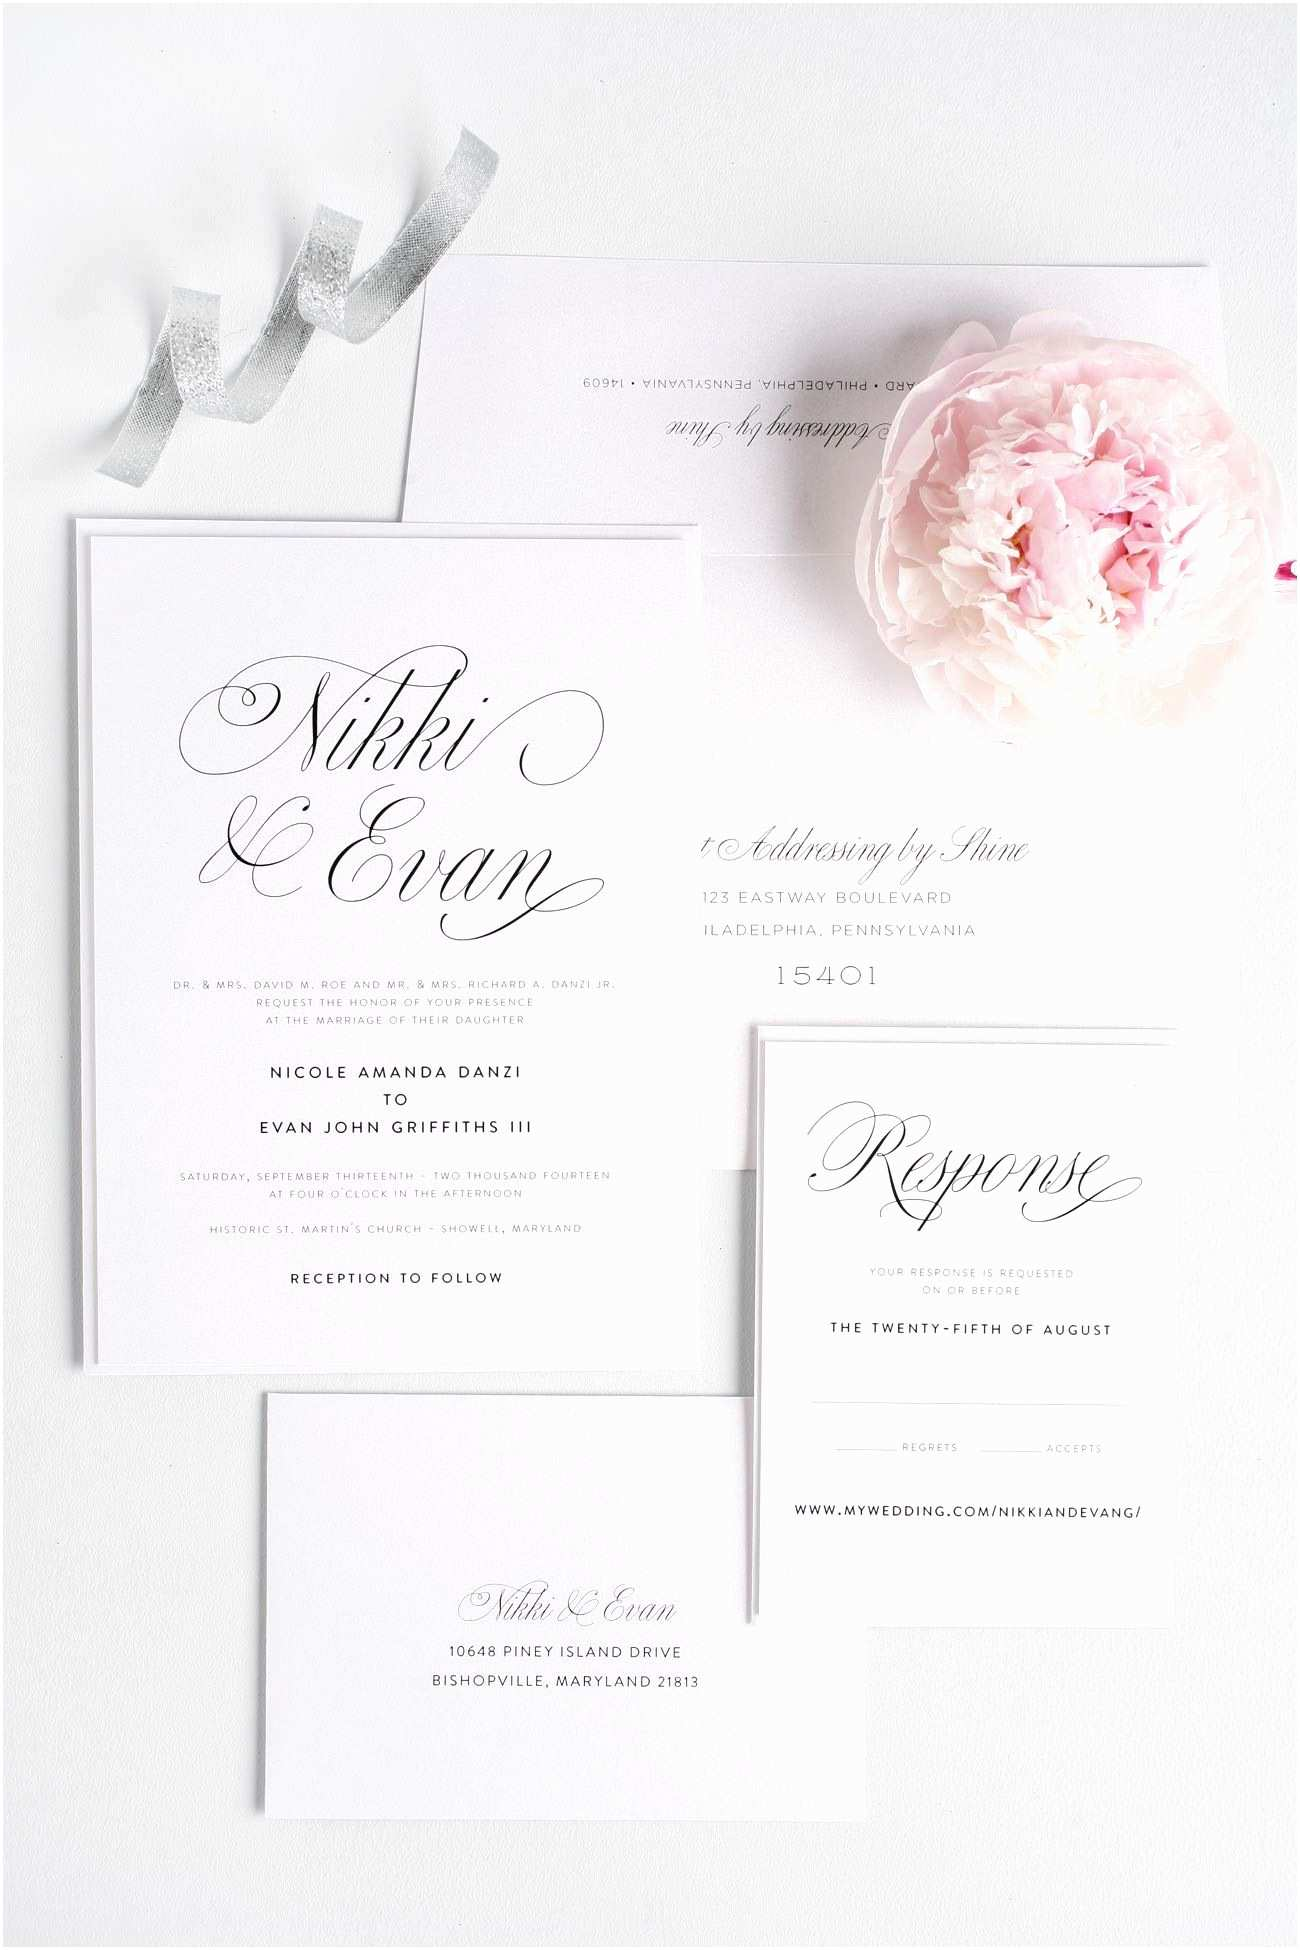 Seal and Send Wedding Invitations Vistaprint Fresh where to Buy Wedding Invitations for Cheap